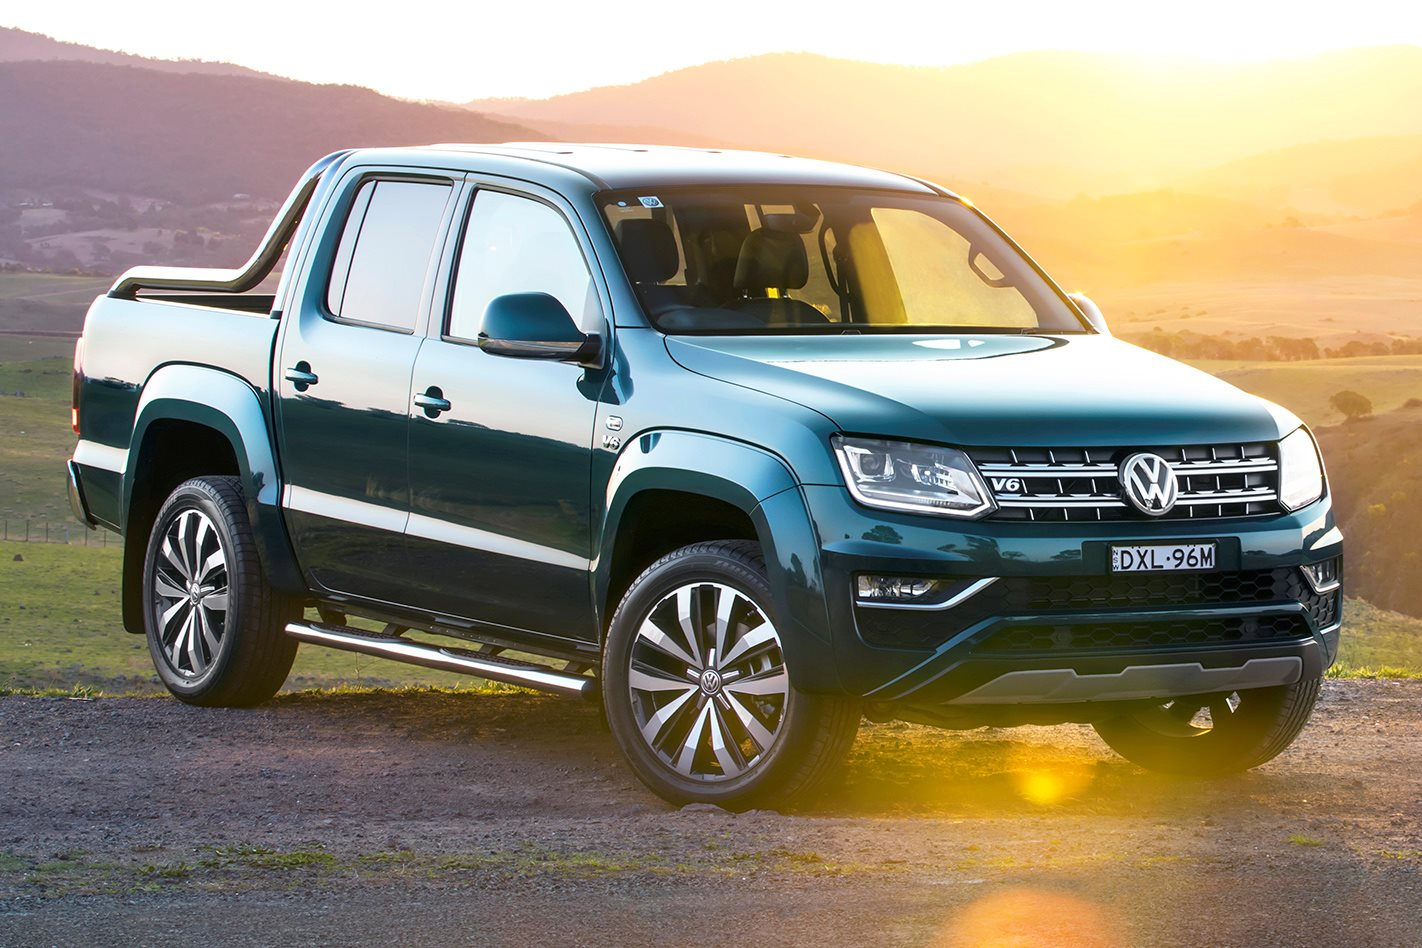 2019 Volkswagen Ultimate 580 V6 price and features announced